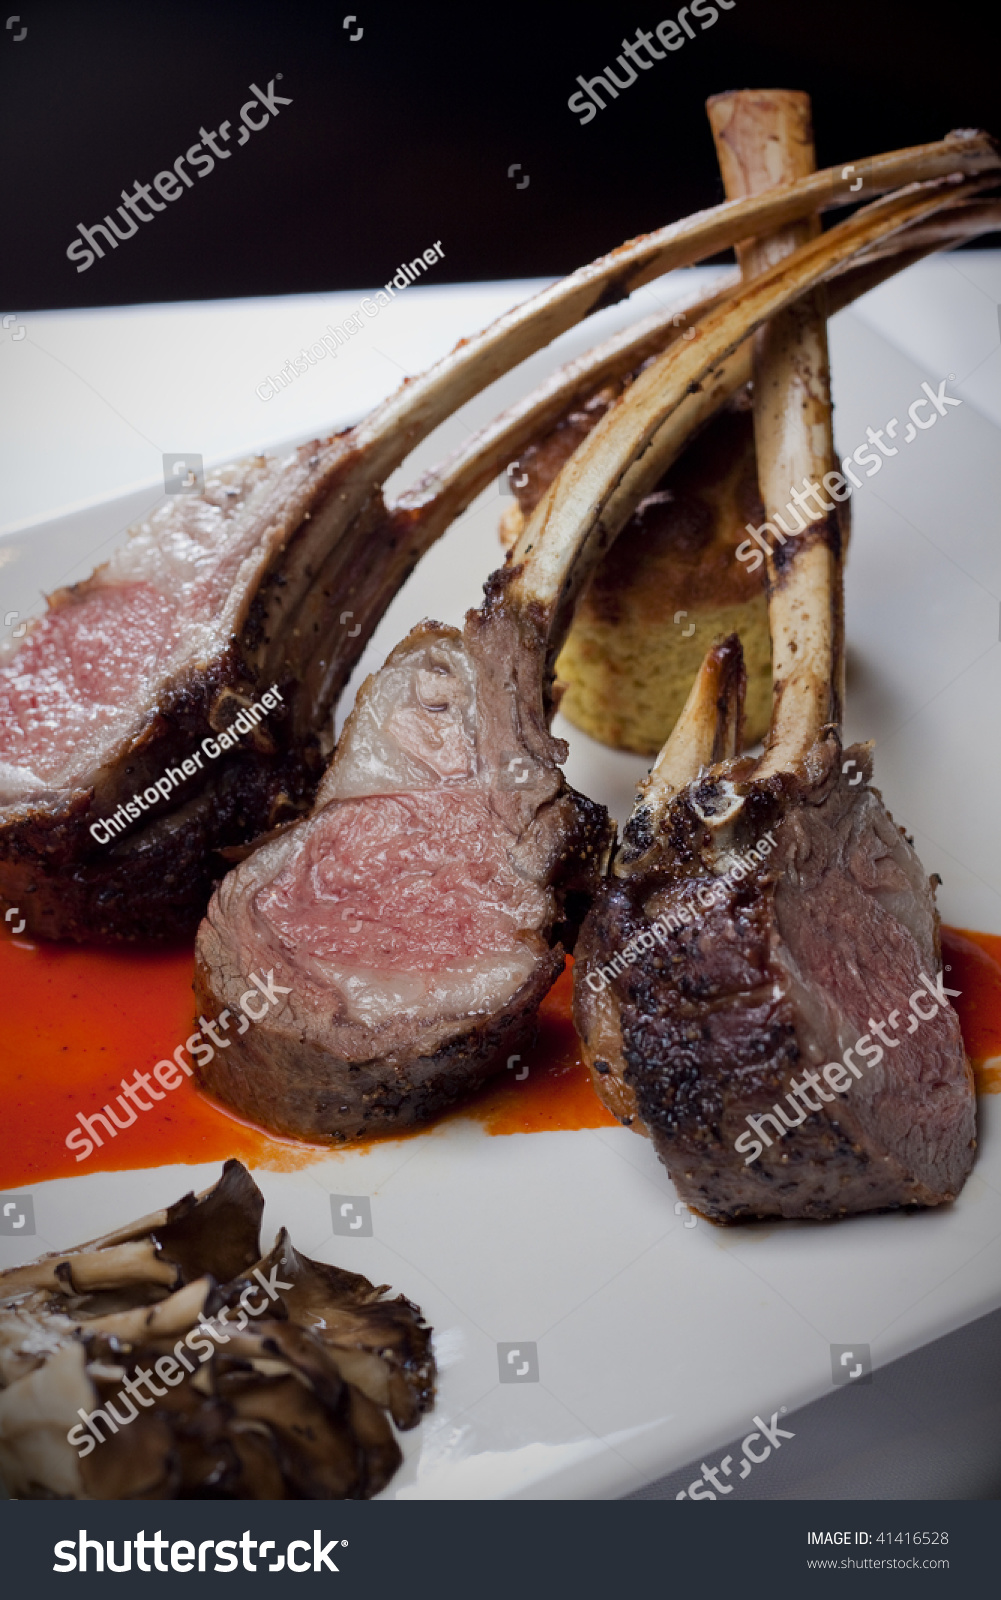 Classic Frenched Rack Of Lamb Stock Photo 41416528 : Shutterstock